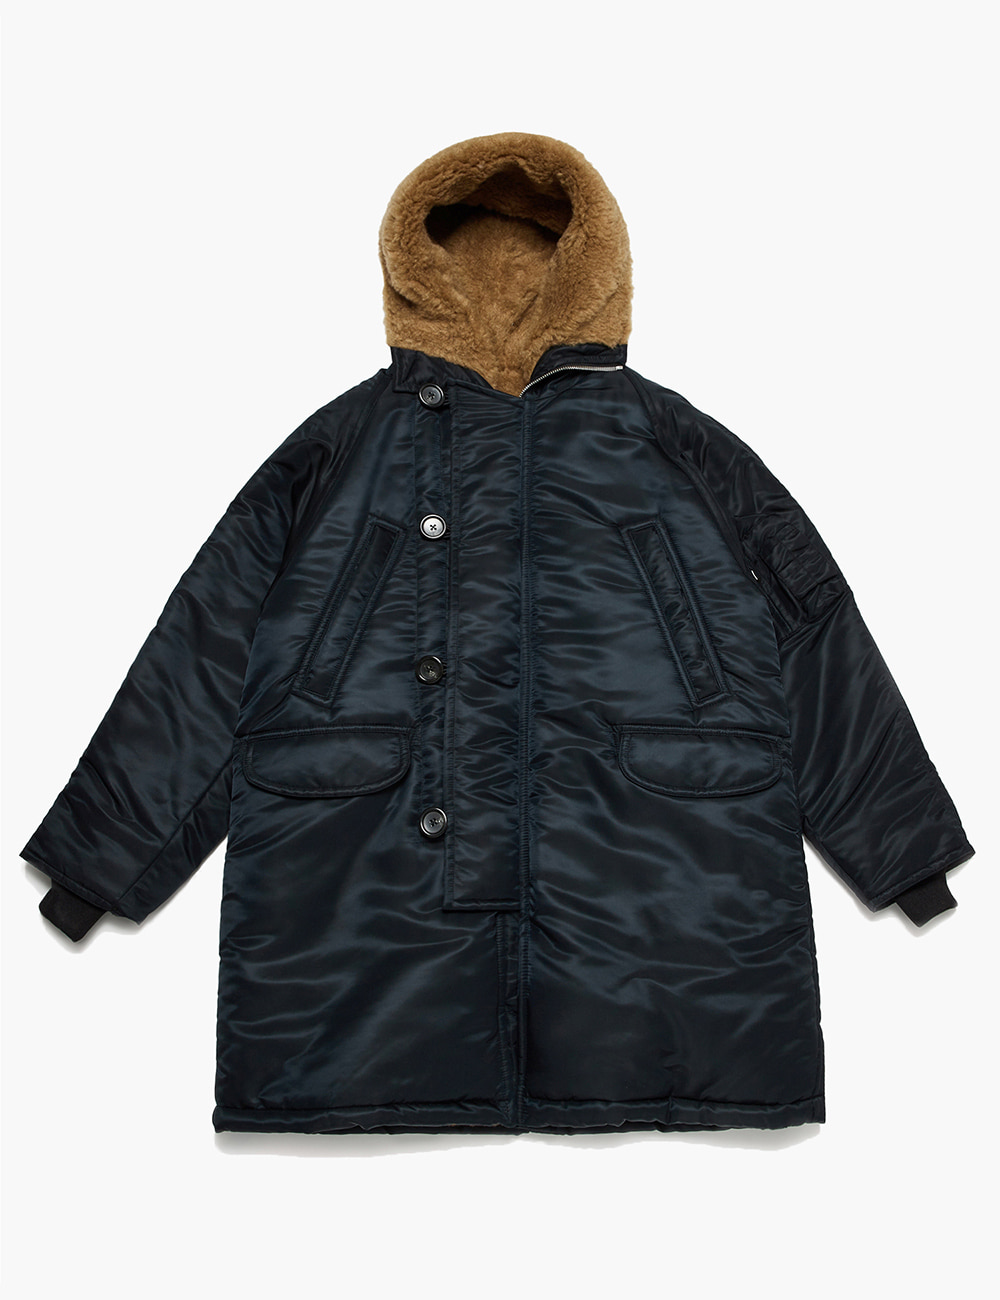 N3-B FAUX FUR LINED PARKA